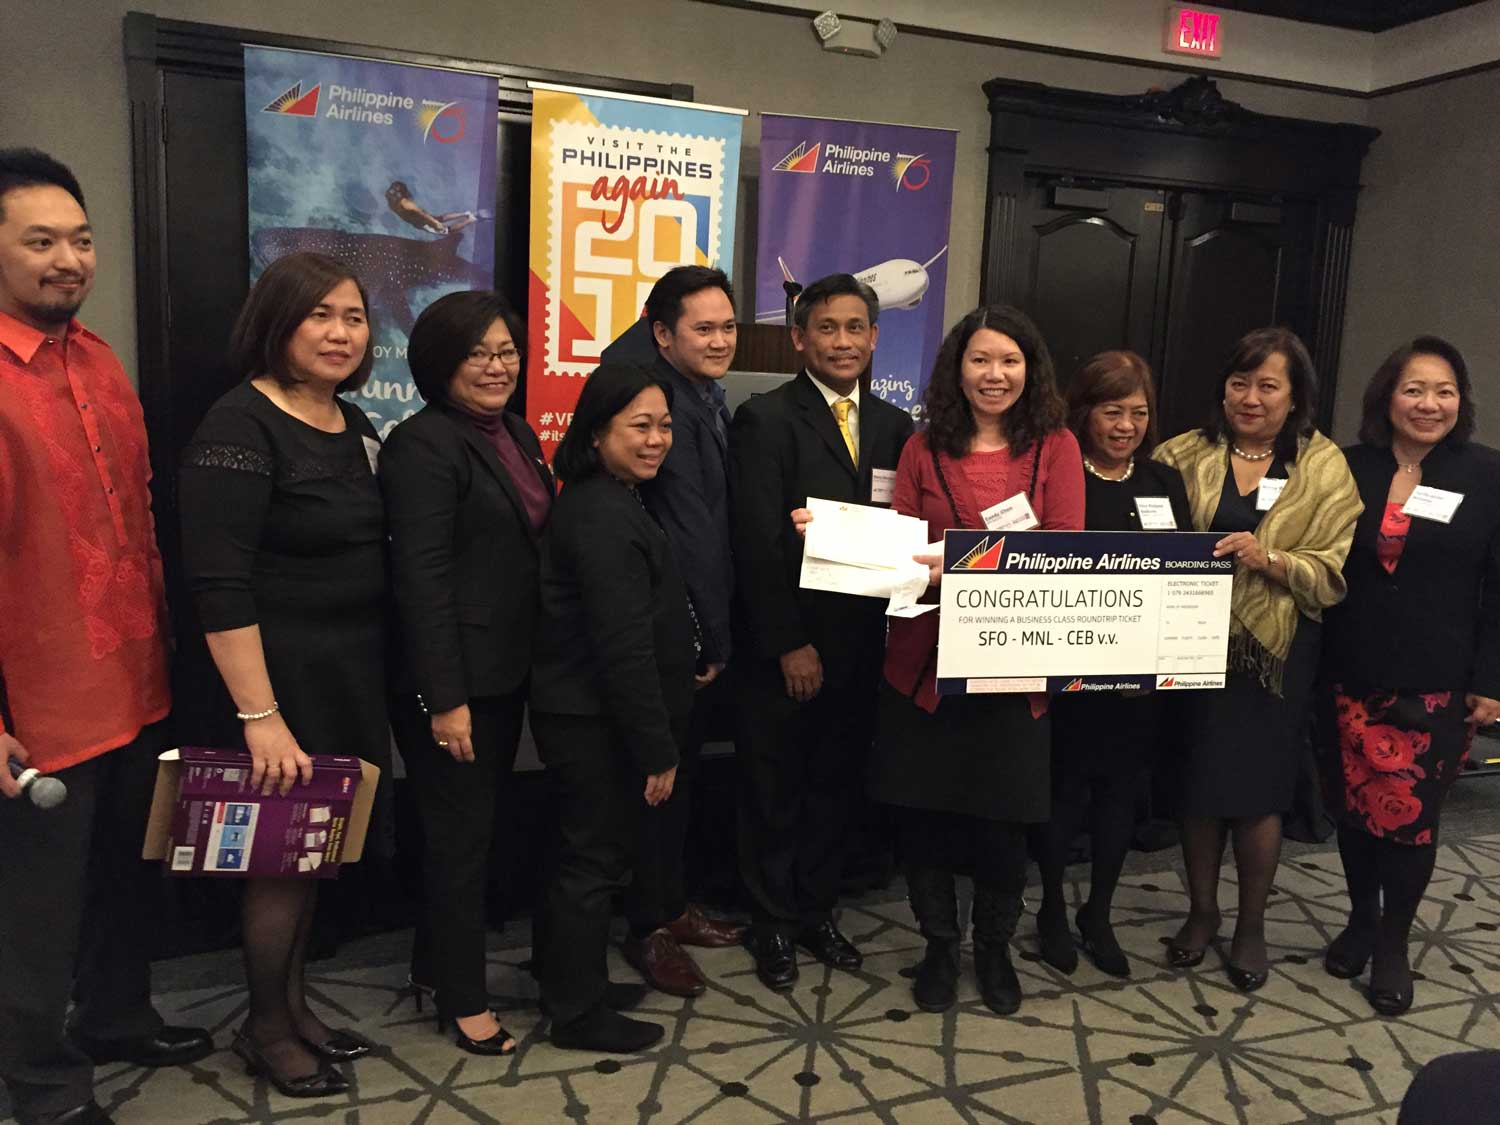 Presenting the raffle prize airline tickets were Consul General Henry Bensurto, Jr., (6th from left), PAL's Marila Revilla (2nd from right) and DOT Director Purificacion Molintas (right).